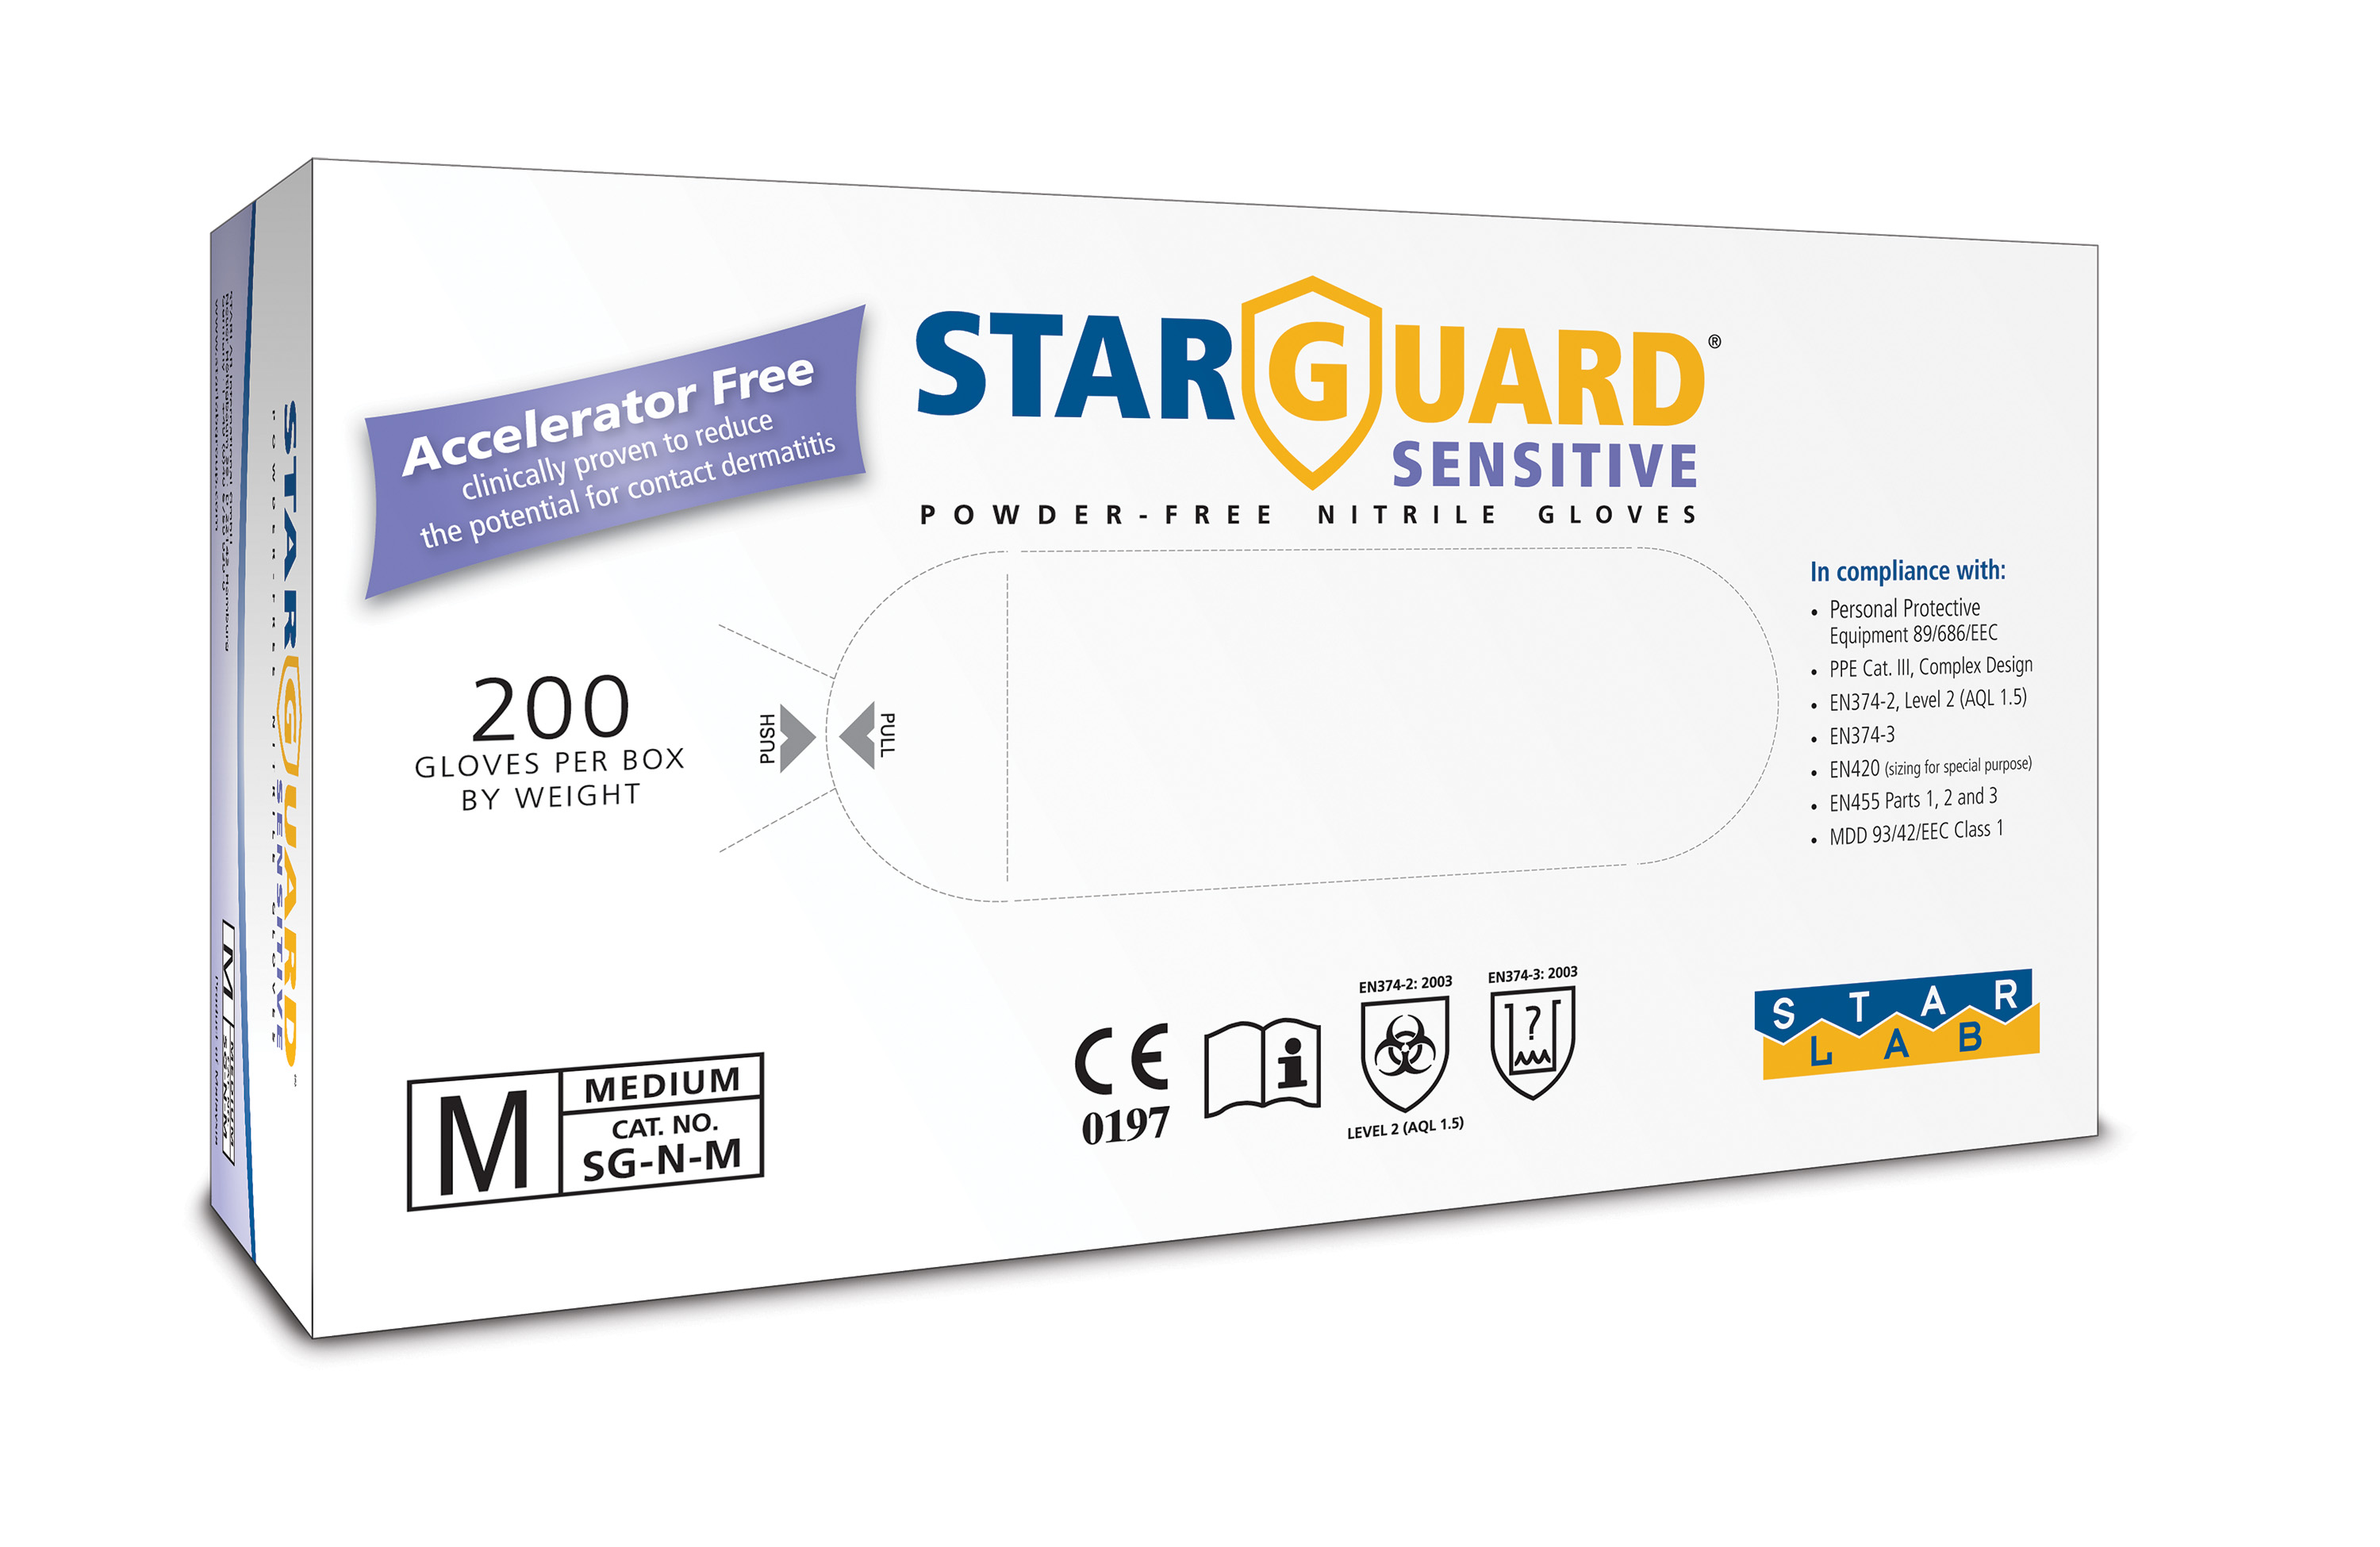 StarGuard SENSITIVE Nitrile Gloves, Powder Free, Blue, Size L, Pk/ 10 x 200 gloves -  just sFr. 8,80/100 gloves